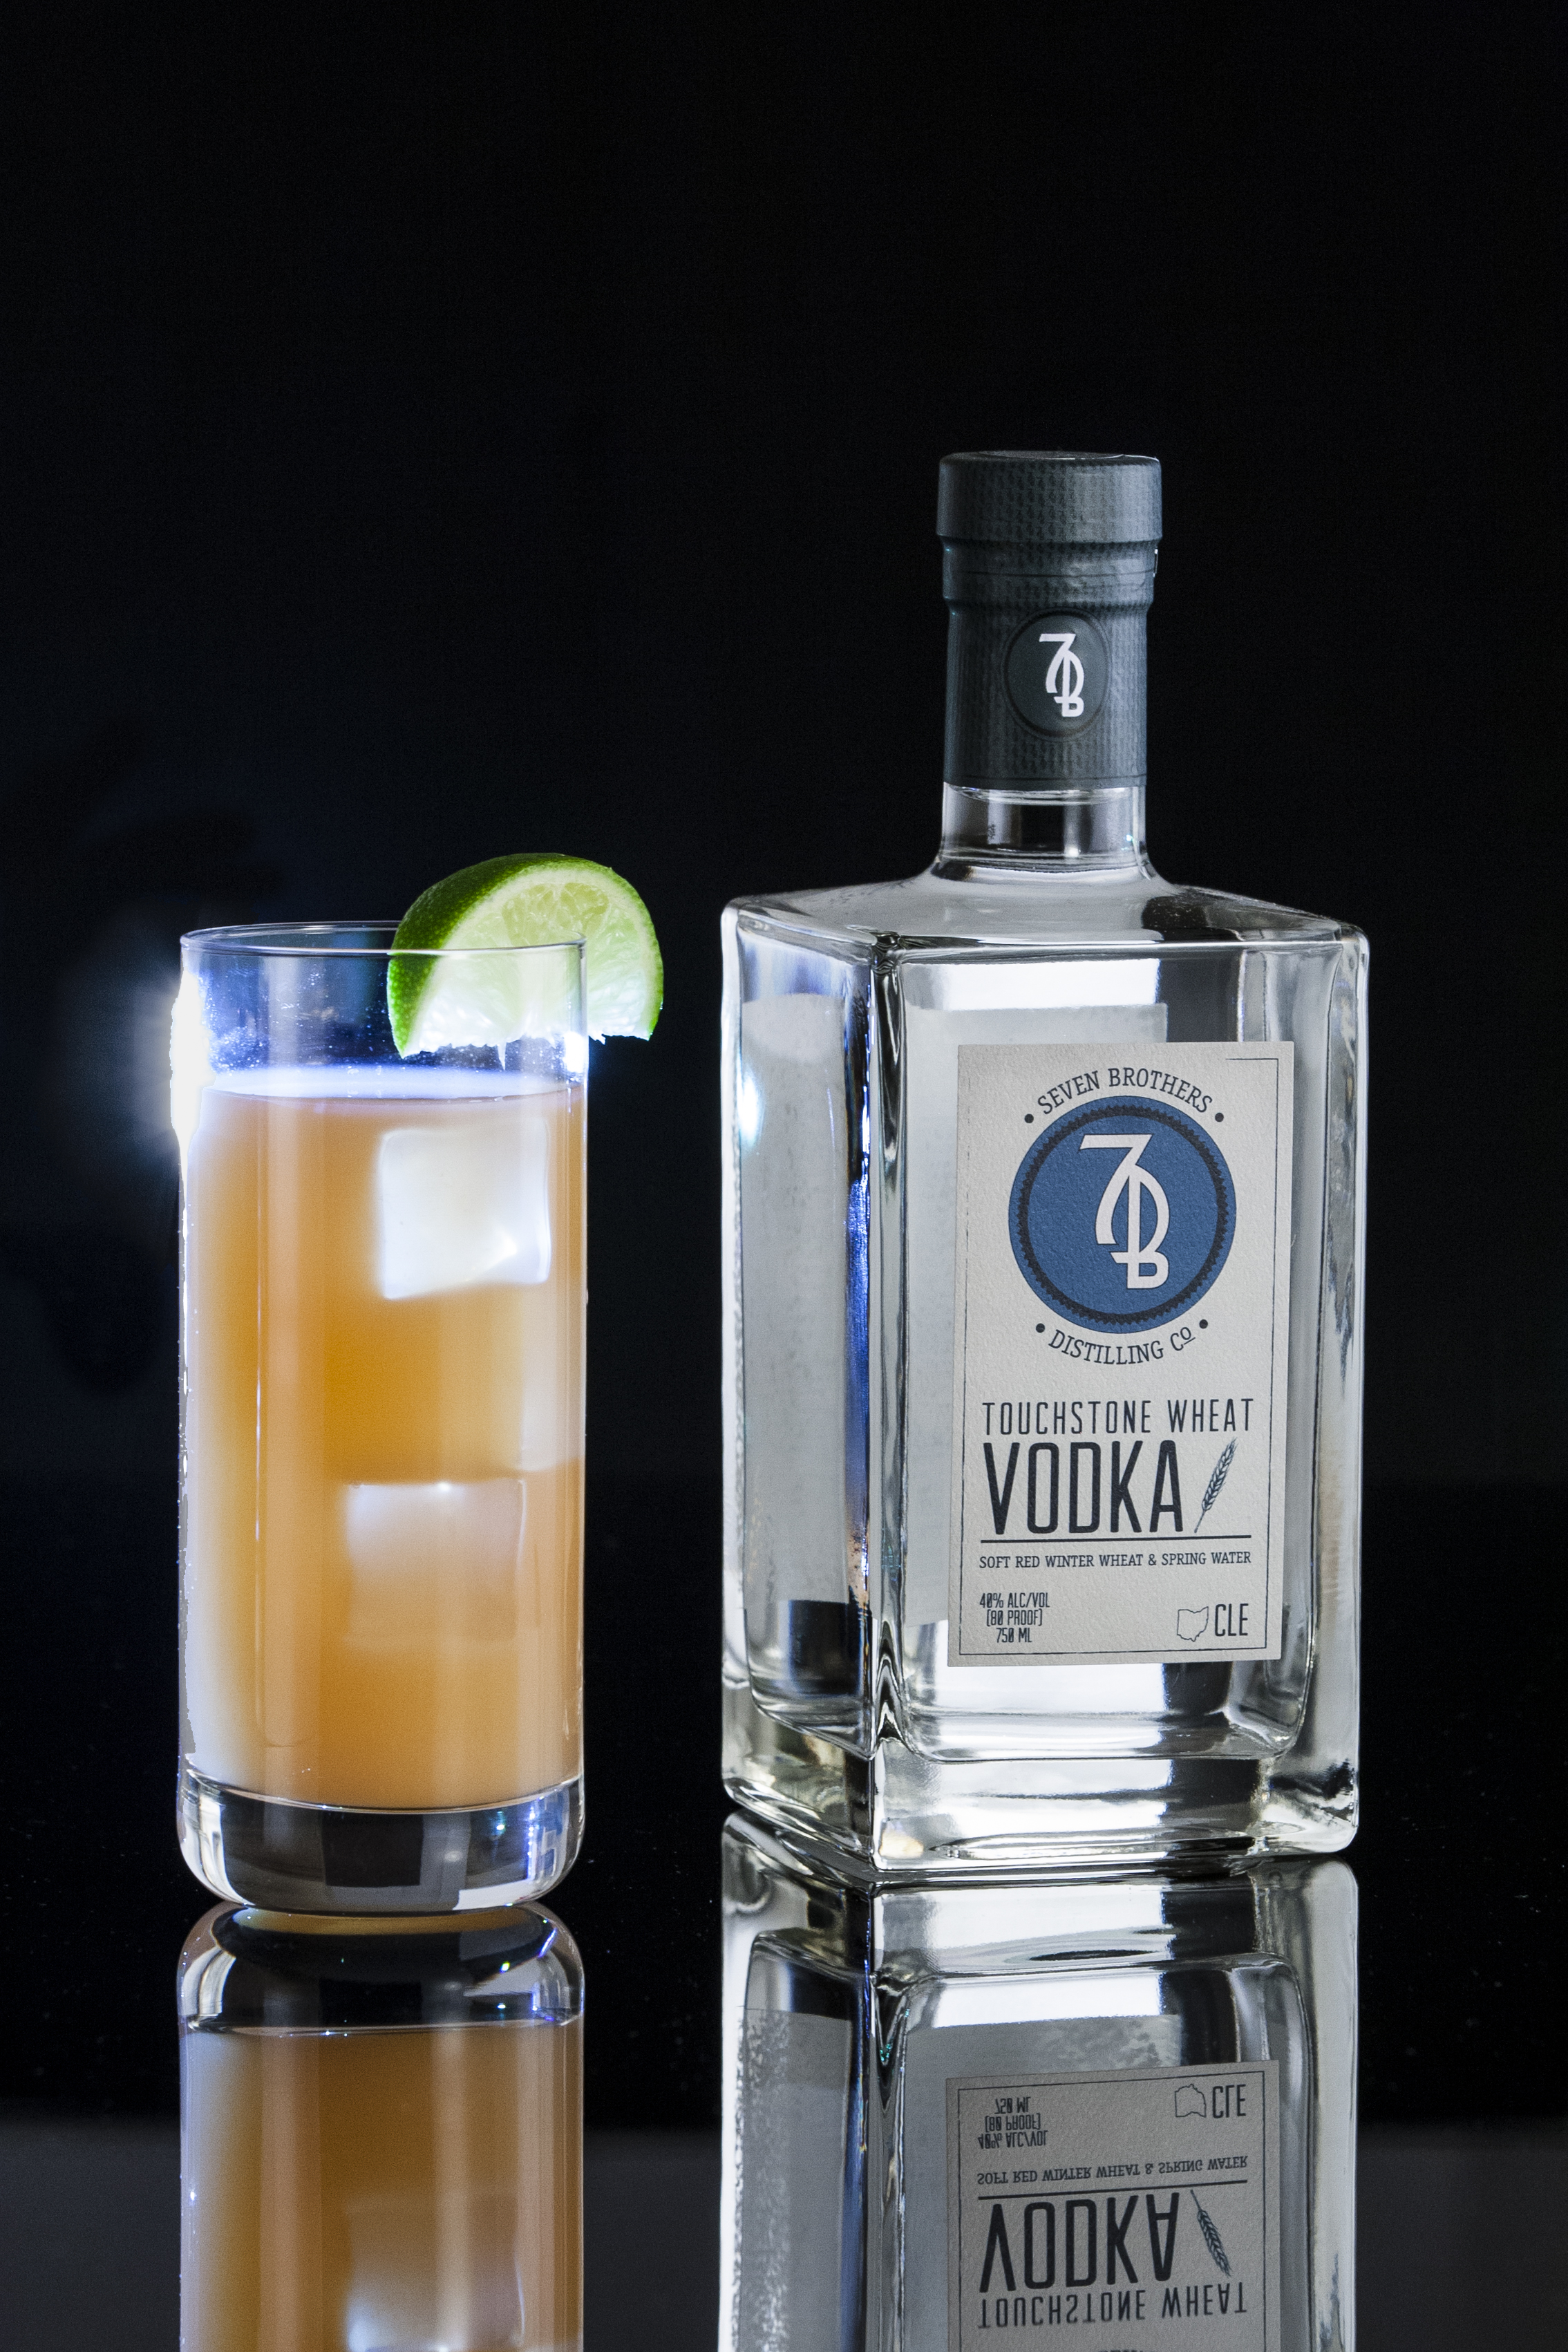 THE GREYHOUND BROTHERS - 1.5 oz Seven Brothers Touchstone Wheat VodkaGrapefruit JuiceCombine vodka and ice and grapefruit juice into a Collins glass. Stir and garnish with a lime wedge.